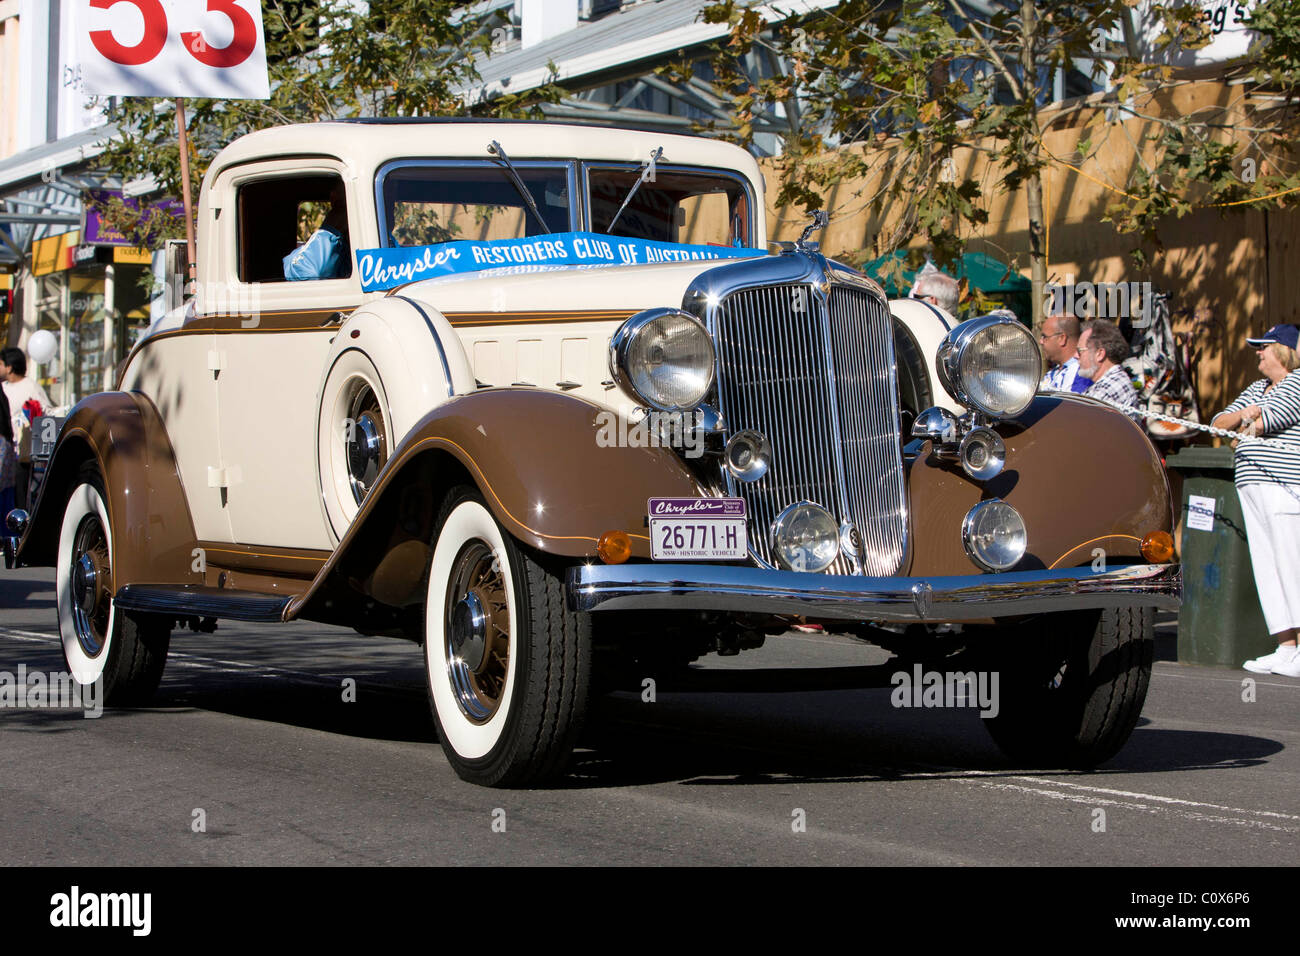 A Chrysler Coupe in a street parade in Blacktown, NSW, Australia - Stock Image